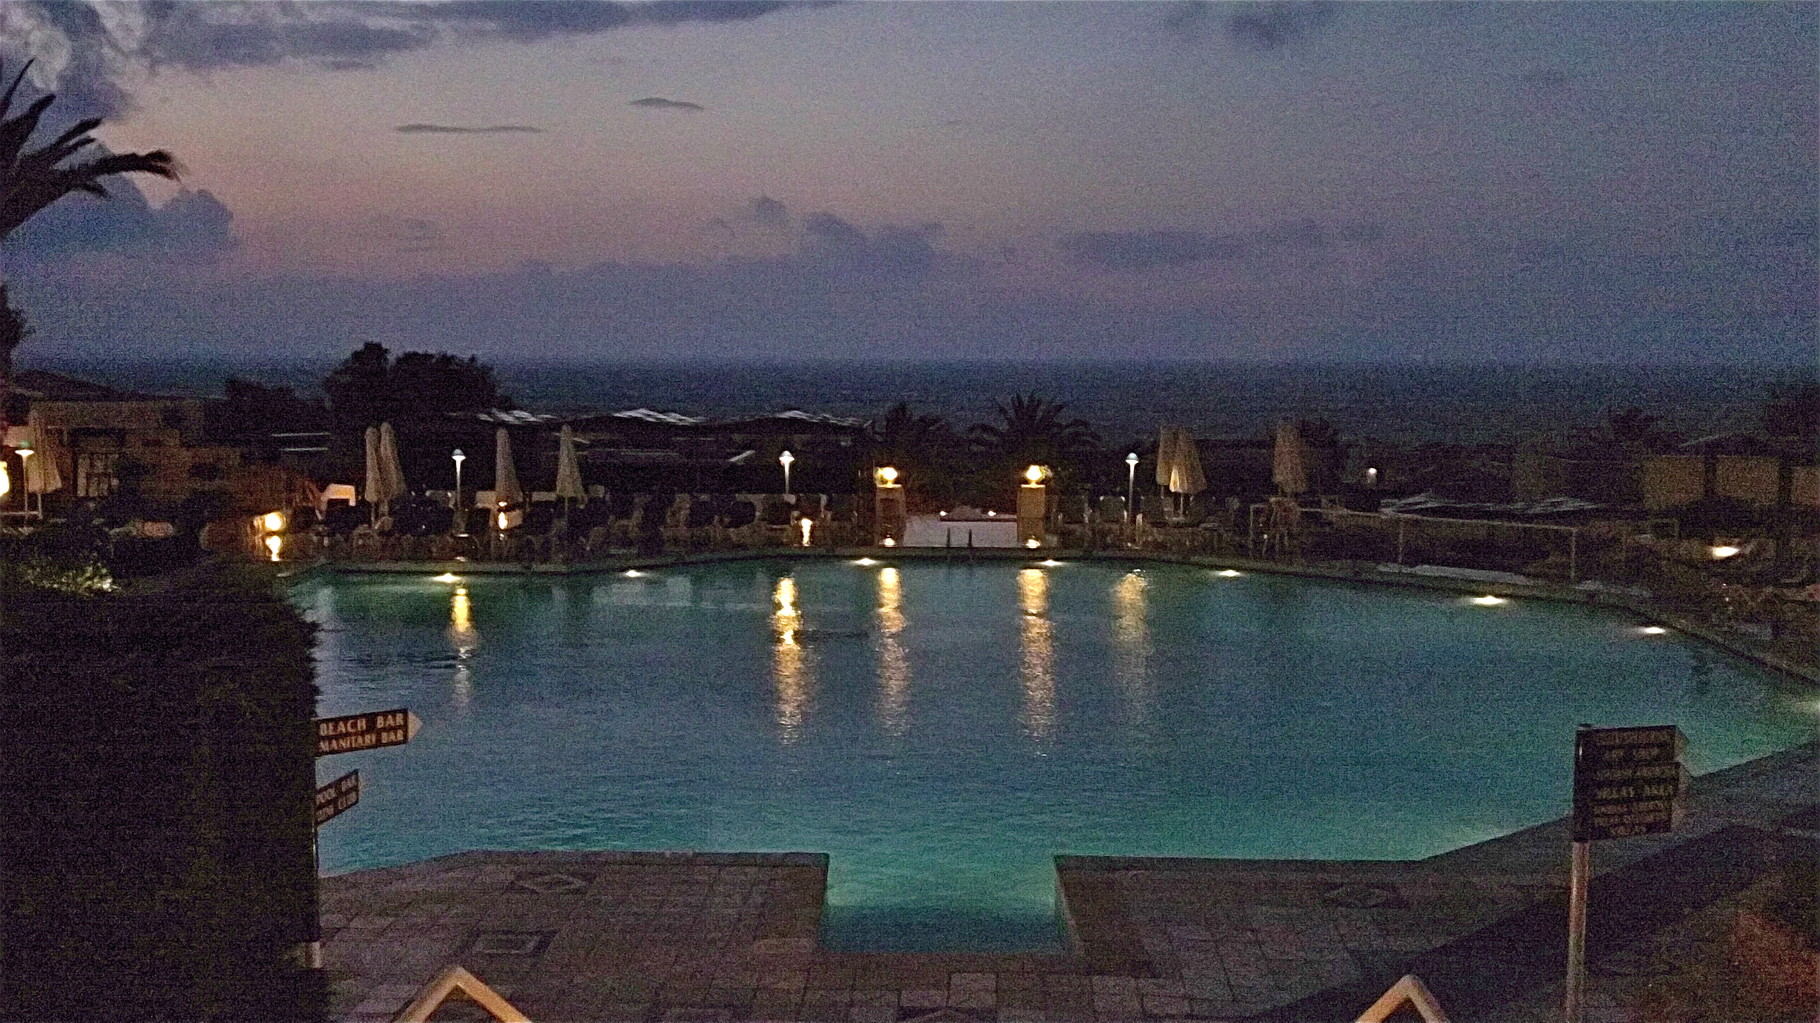 Early evening at the Aldemar Royal Knossos Hotel near Hersonissou, Crete